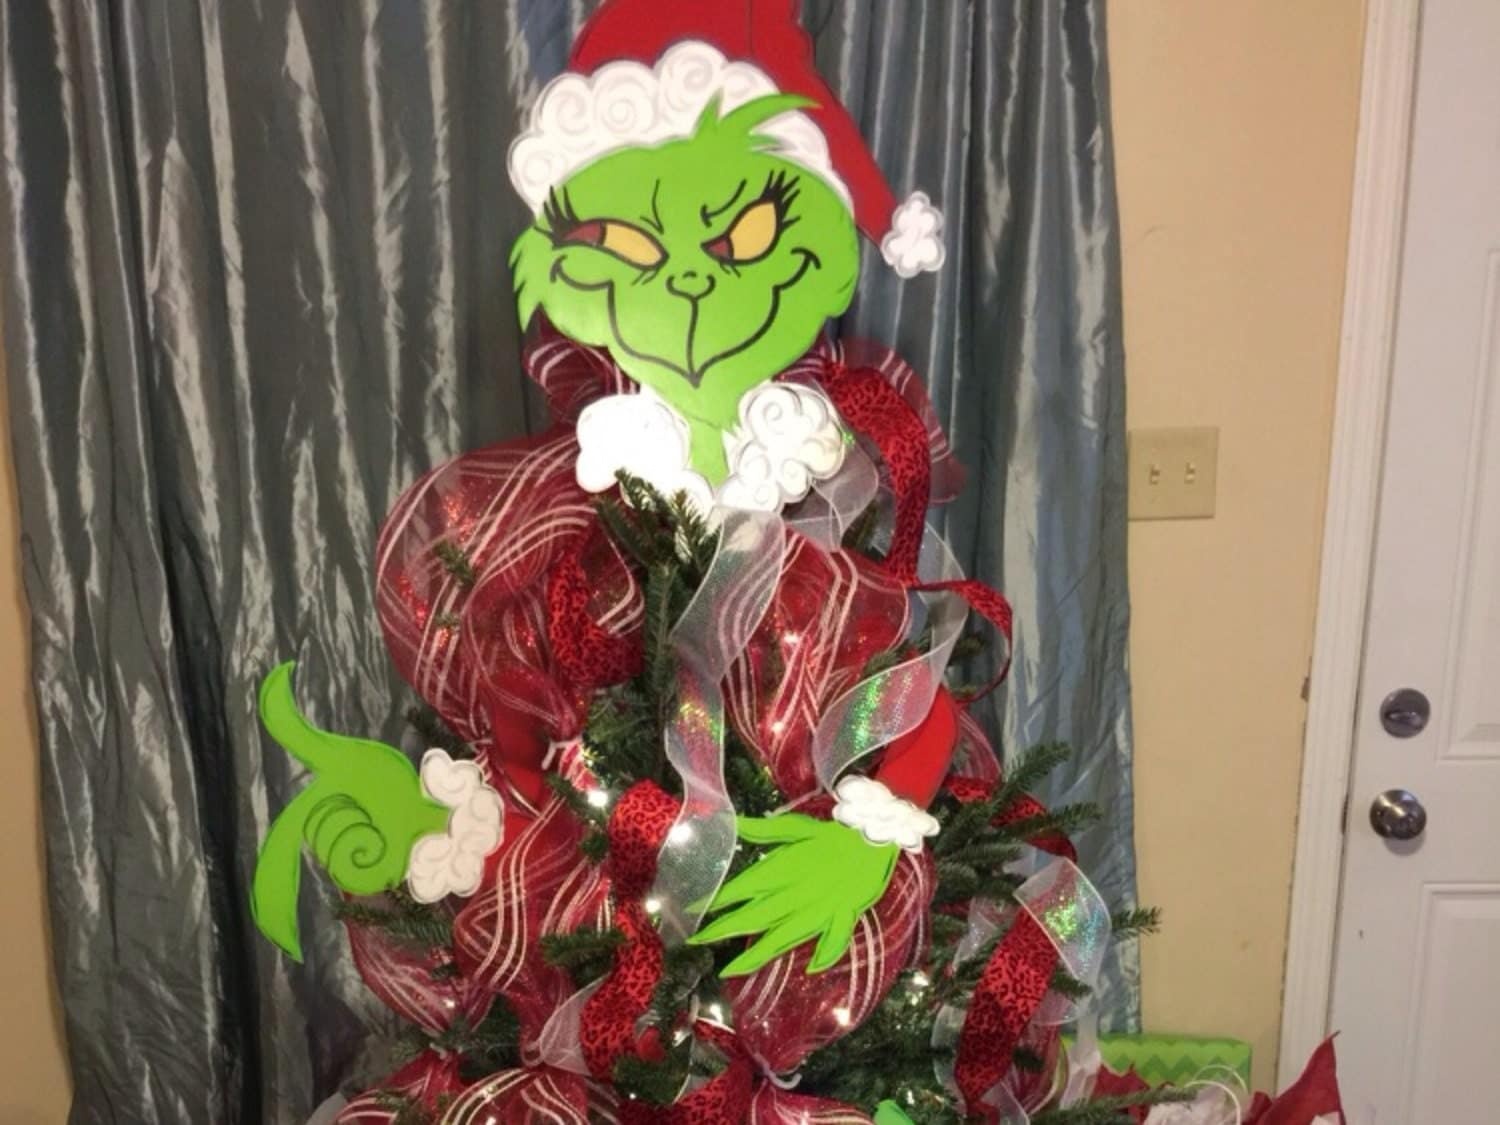 Cake Decorating Classes Burnaby : grinch tree - 28 images - grinch tree display nov 9 royal city nursery, whoville tree www imgkid ...